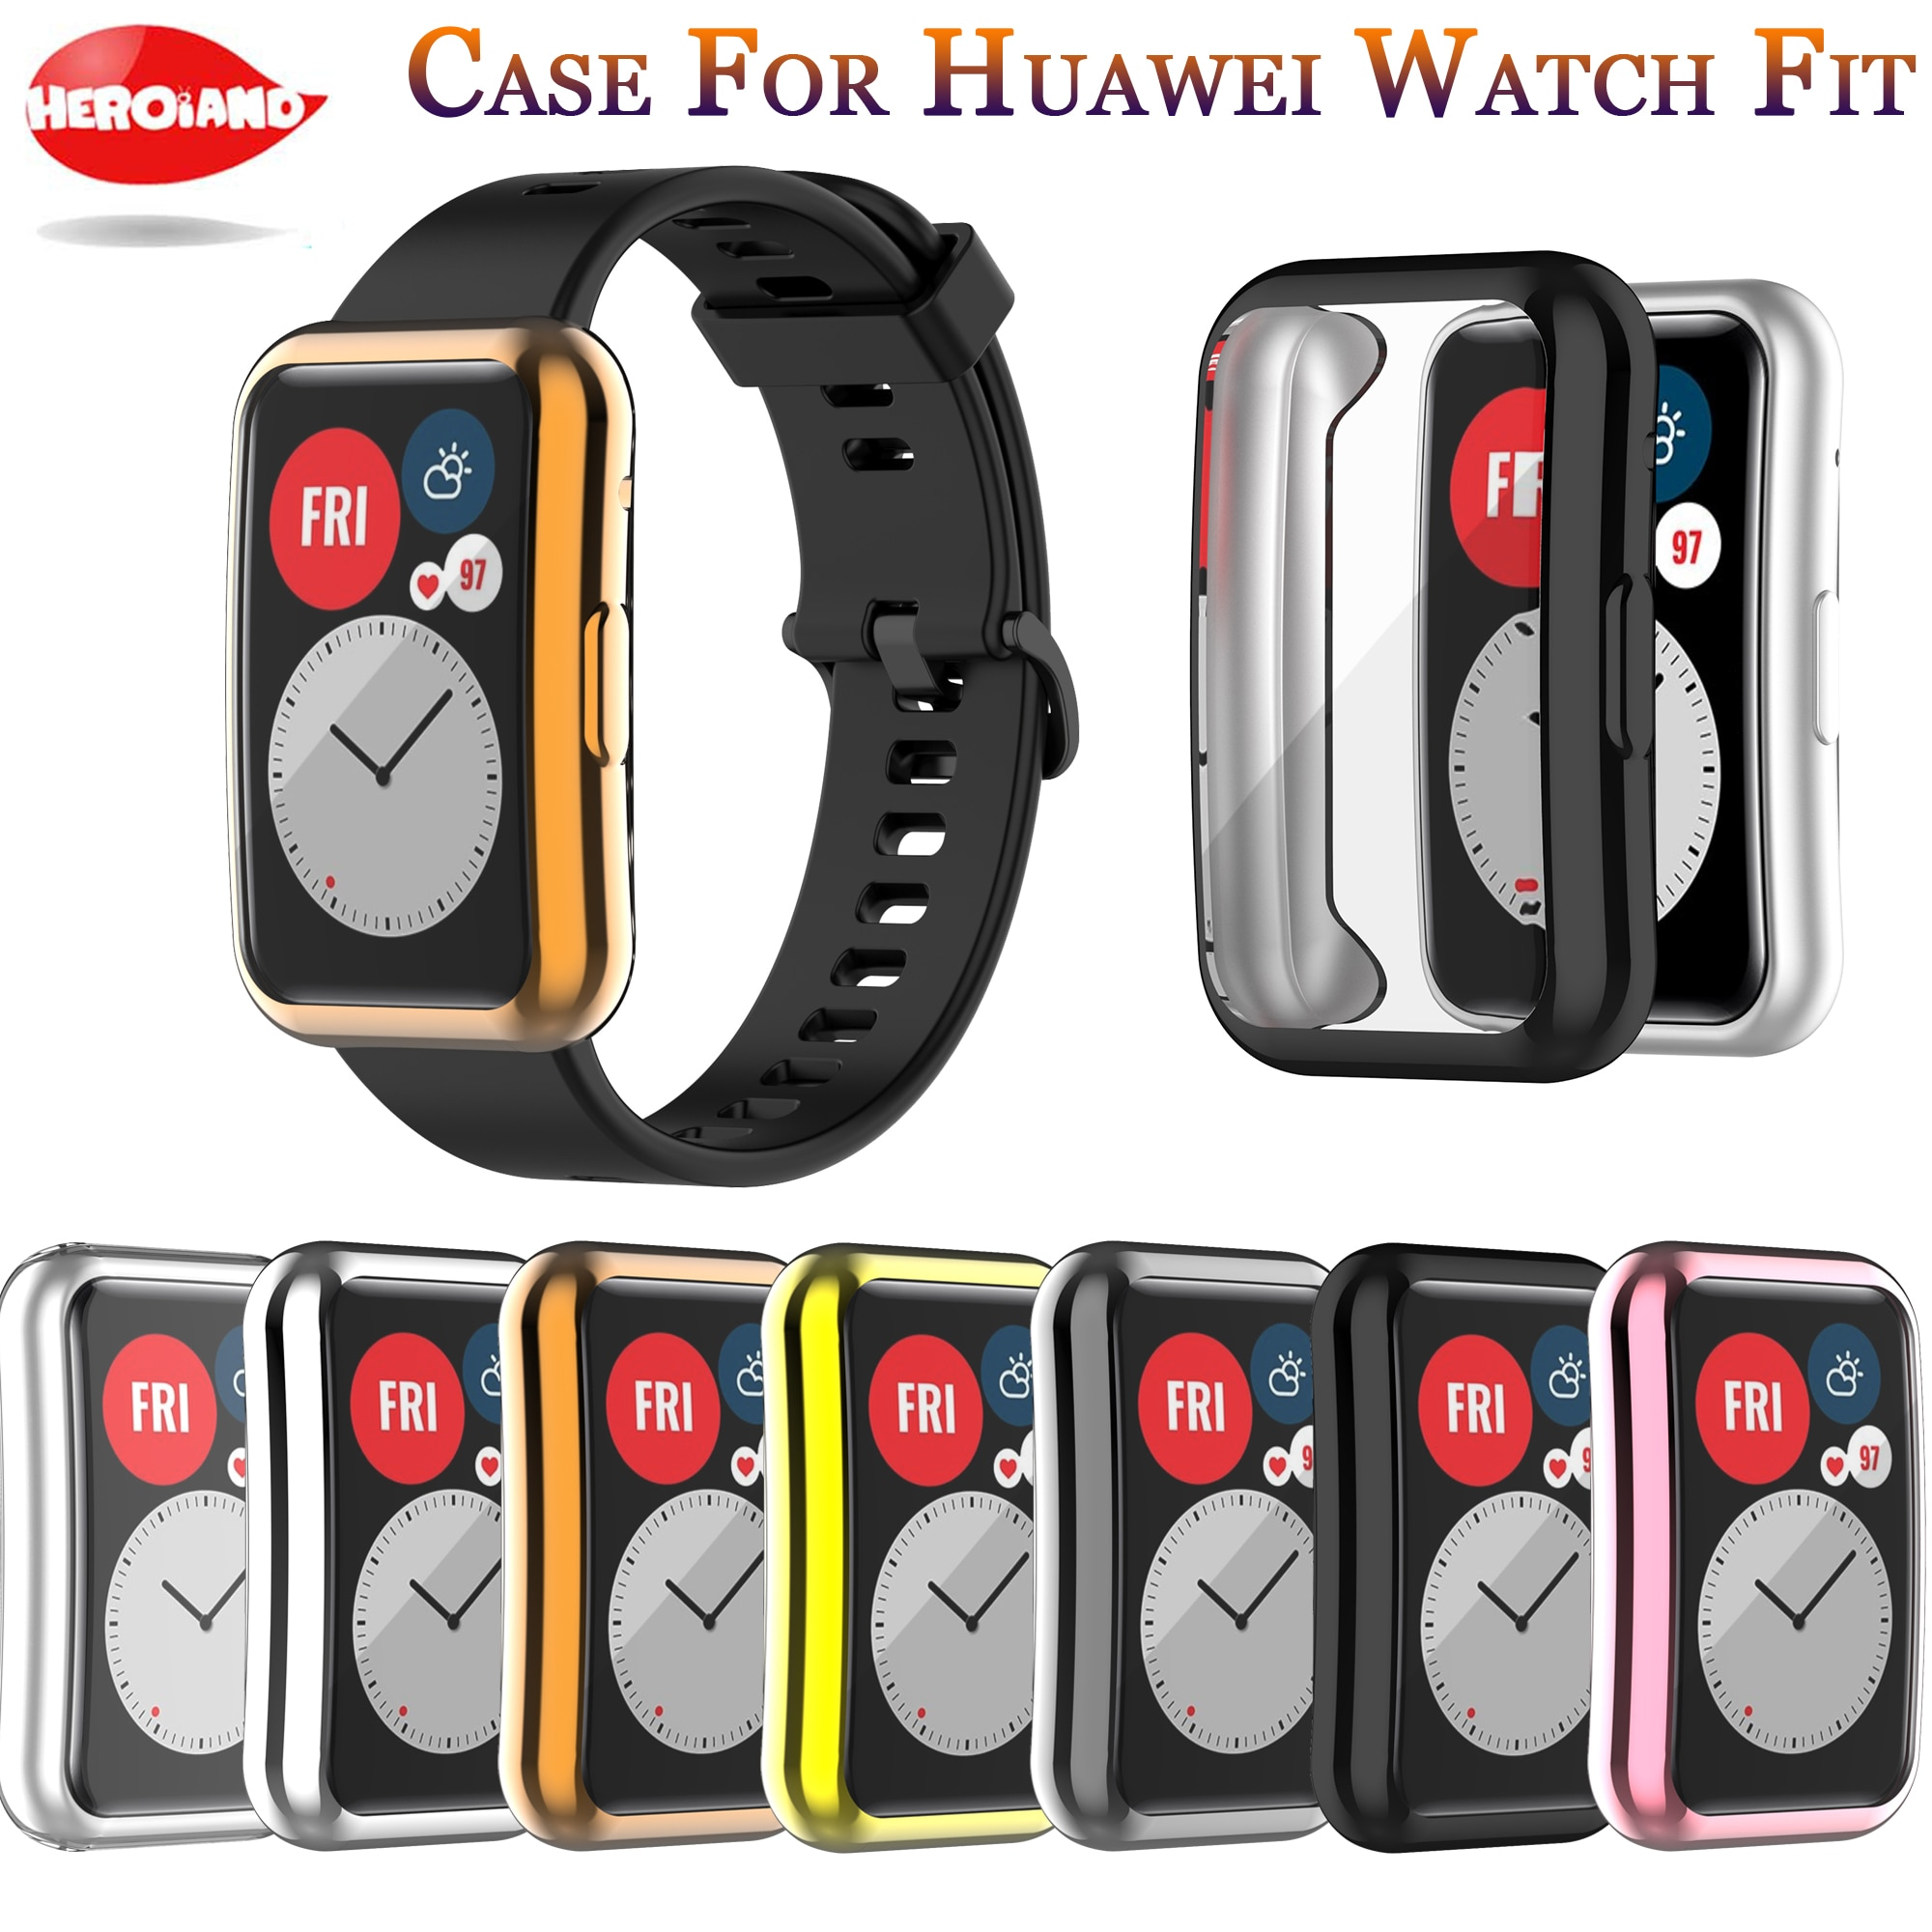 TPU Soft Full Screen Glass Protector Case Shell Edge Frame For Huawei Watch Fit Strap Band Protective Film Strap For Huawei Fit tpu soft silicone soft full screen glass protector case shell frame for huawei honor es watch fitting plating protective cover